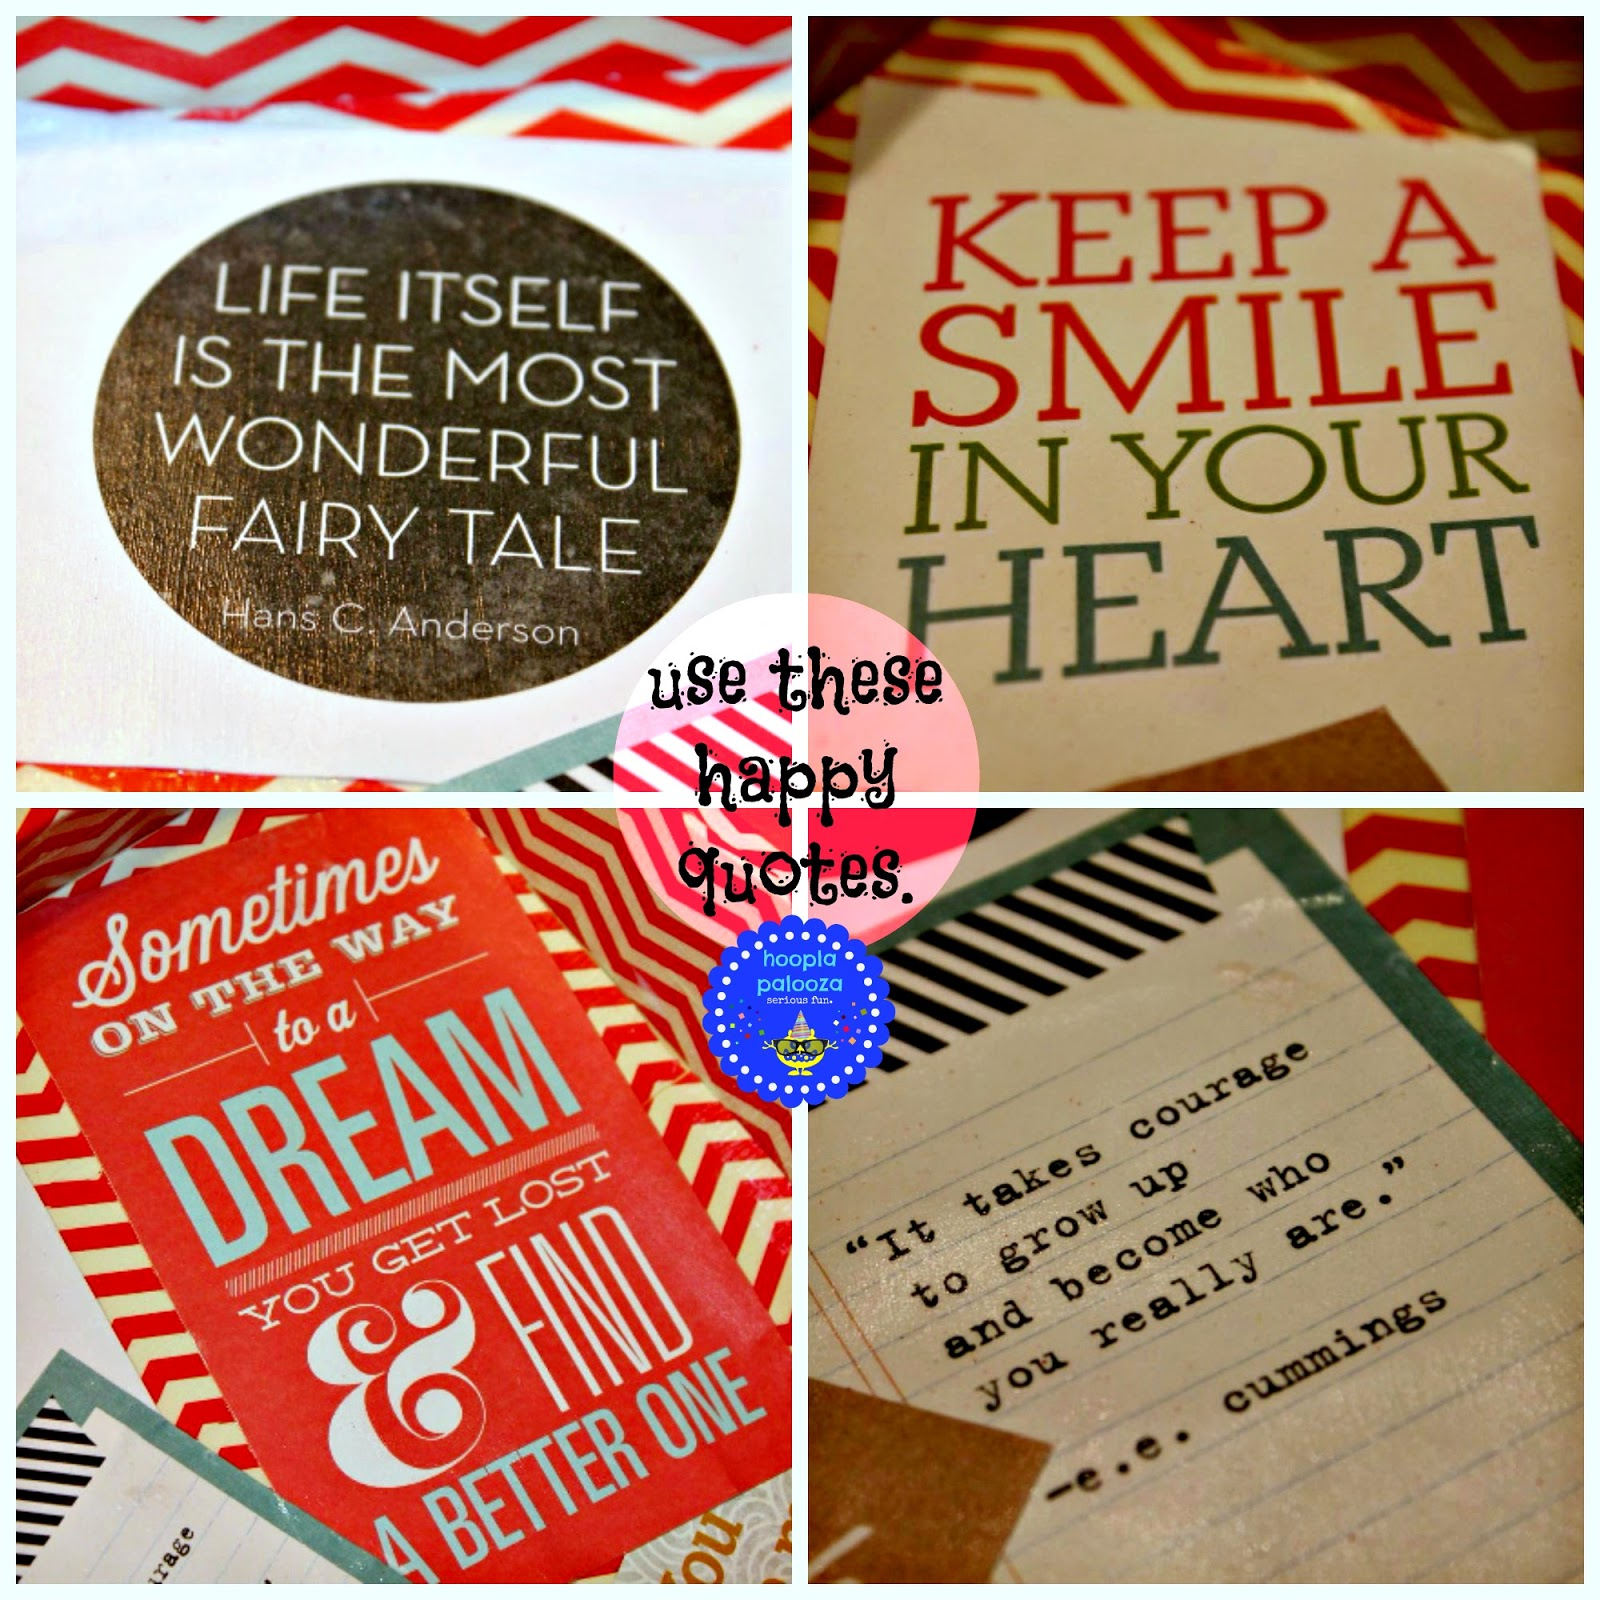 Hoopla Palooza Duct Tape Happy Quote Tray